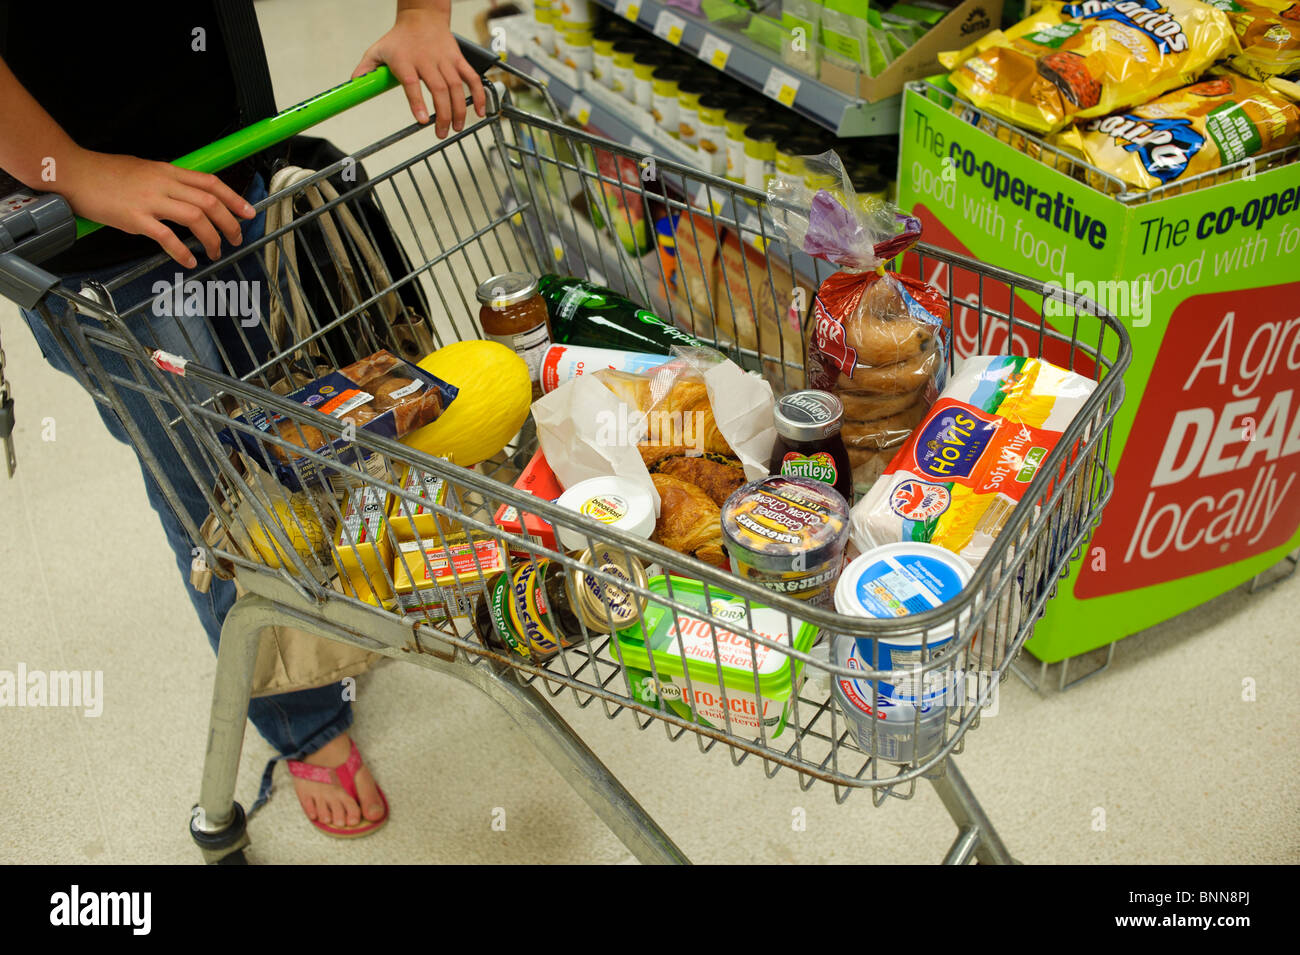 A woman pushing a Small shopping trolley with various items of fresh food Co-Op supermarket, UK - Stock Image